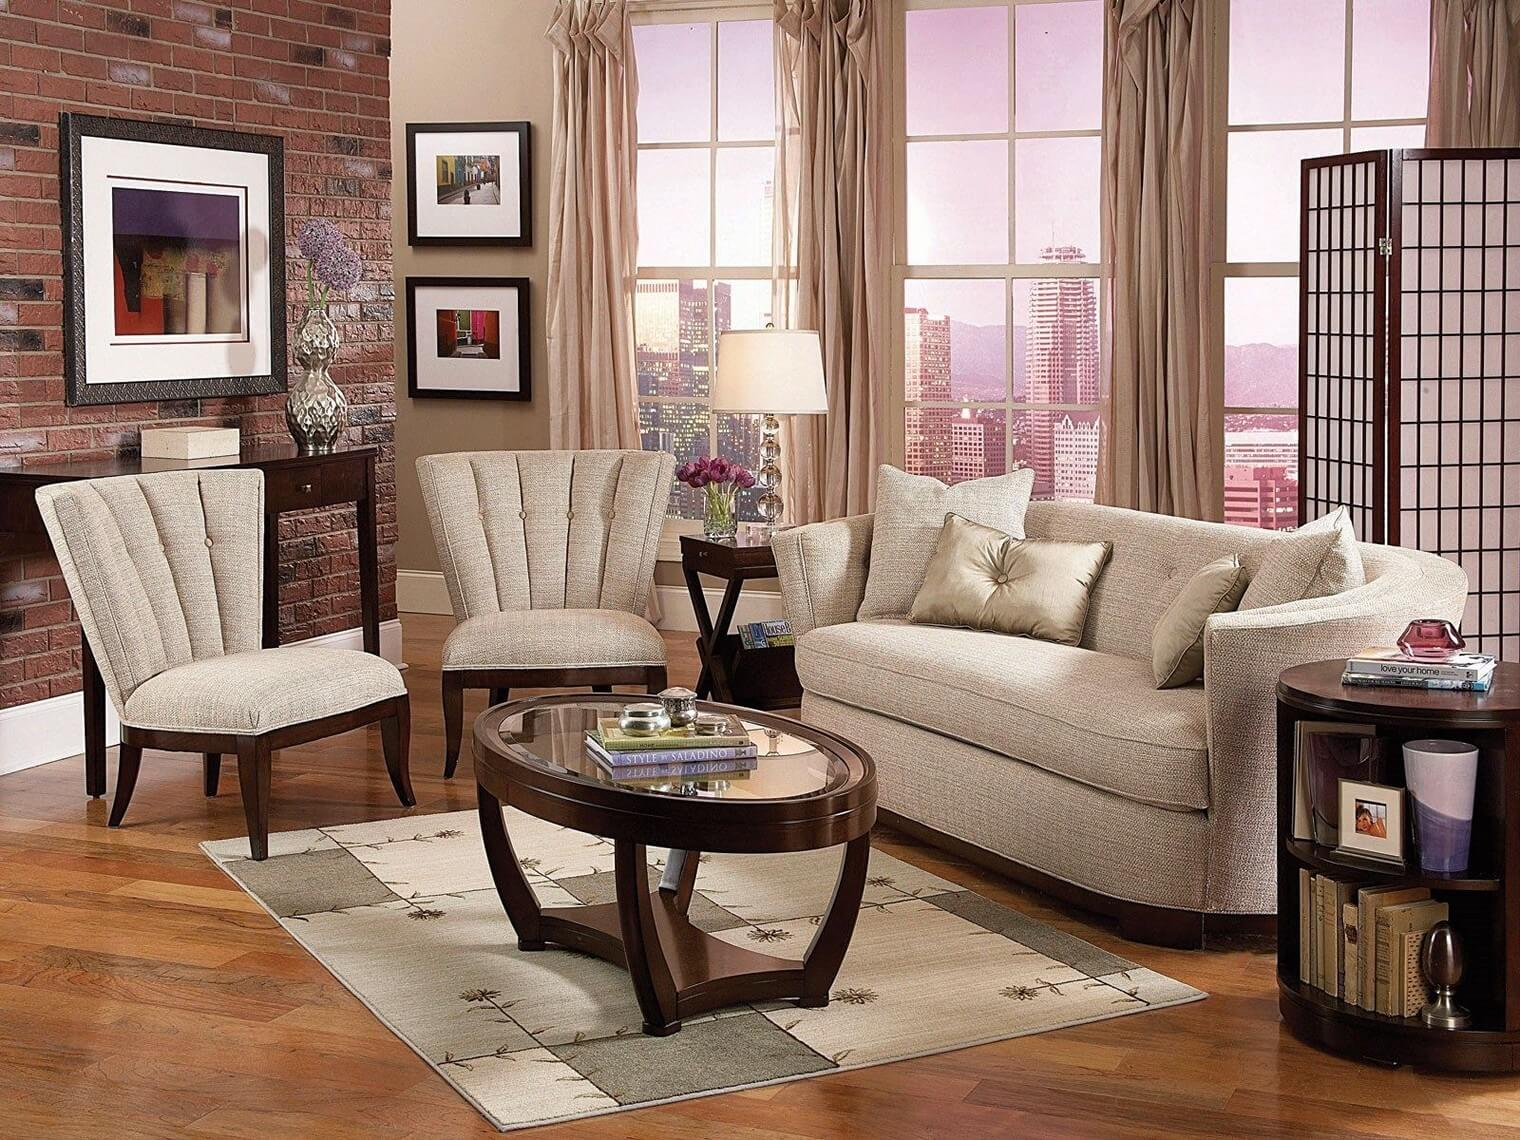 124 great living room ideas and designs photo gallery for Living room furnishings